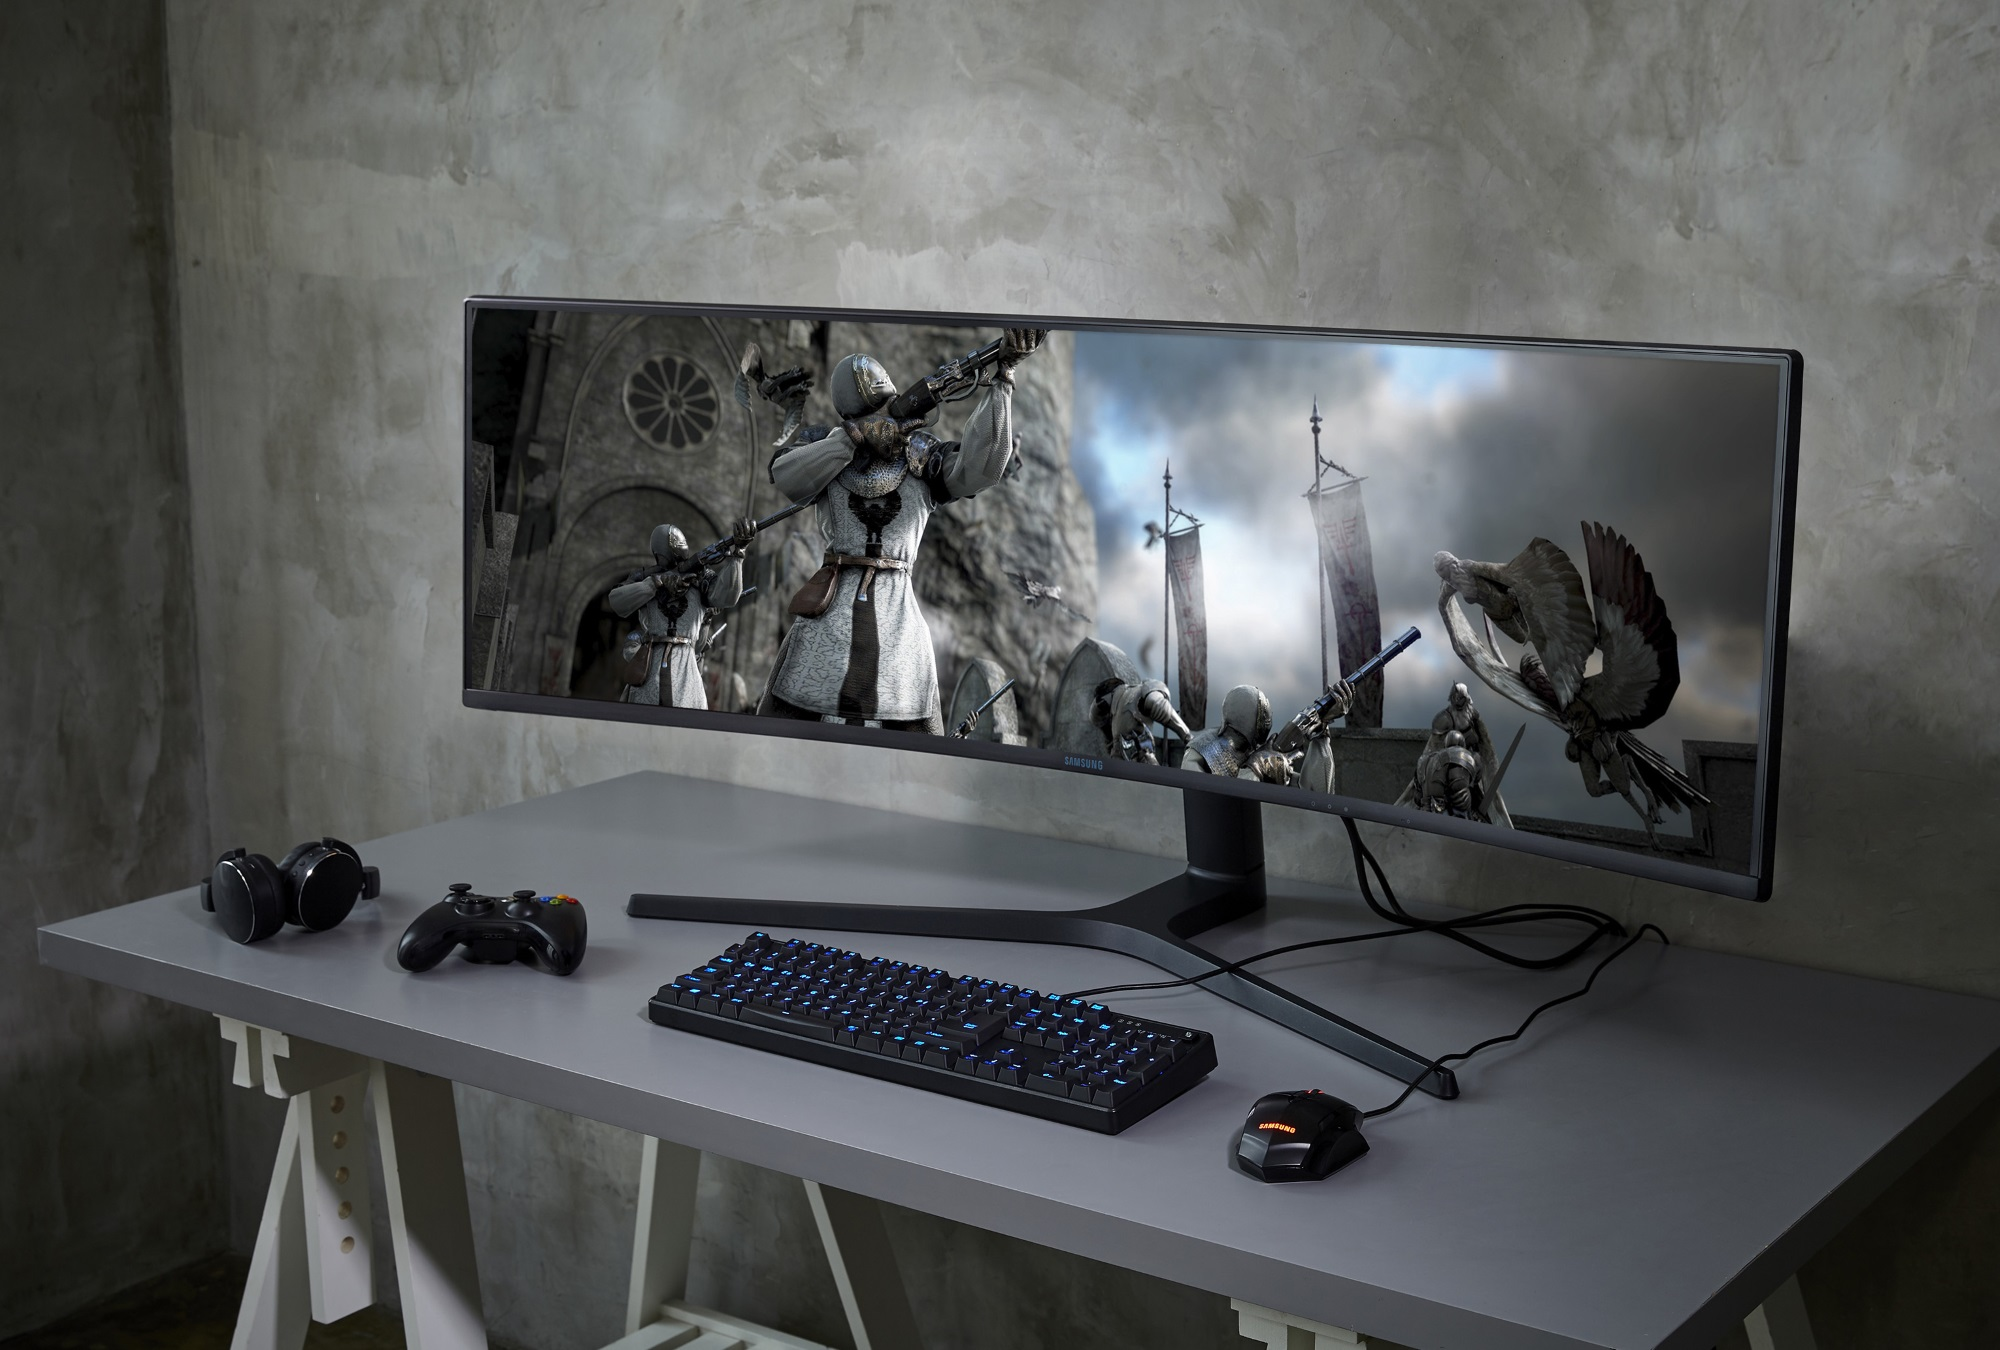 Samsung's Space Monitor is practical and minimal Samsung CRG9 super wide monitor 3